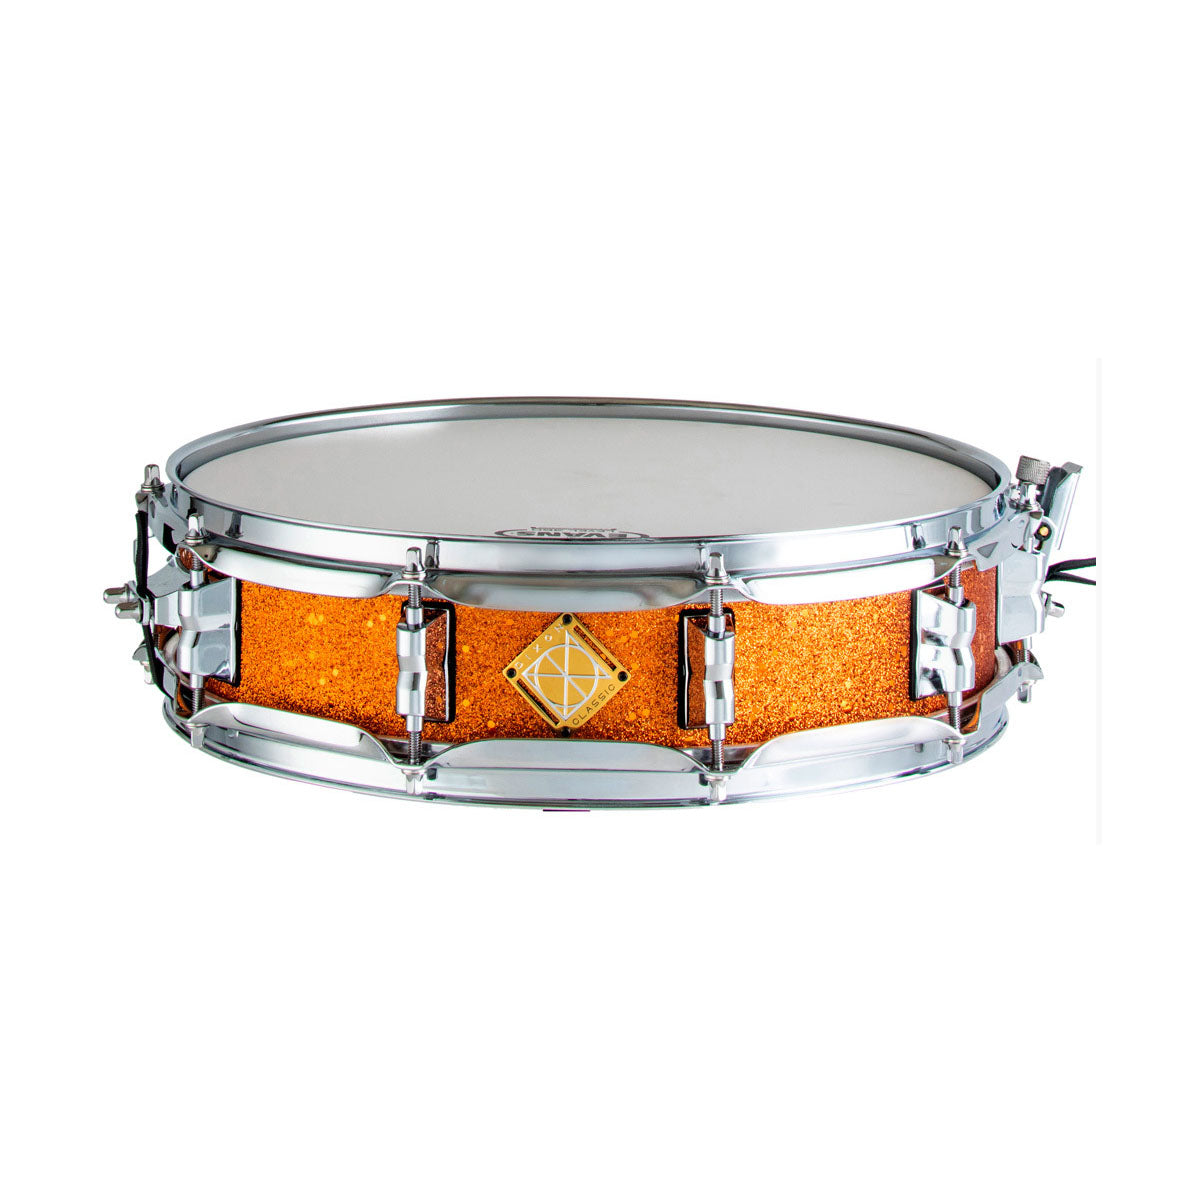 Dixon Classic Series Snare Drum Orange Sparkle - 14x3.5inch - PDSCL354OS